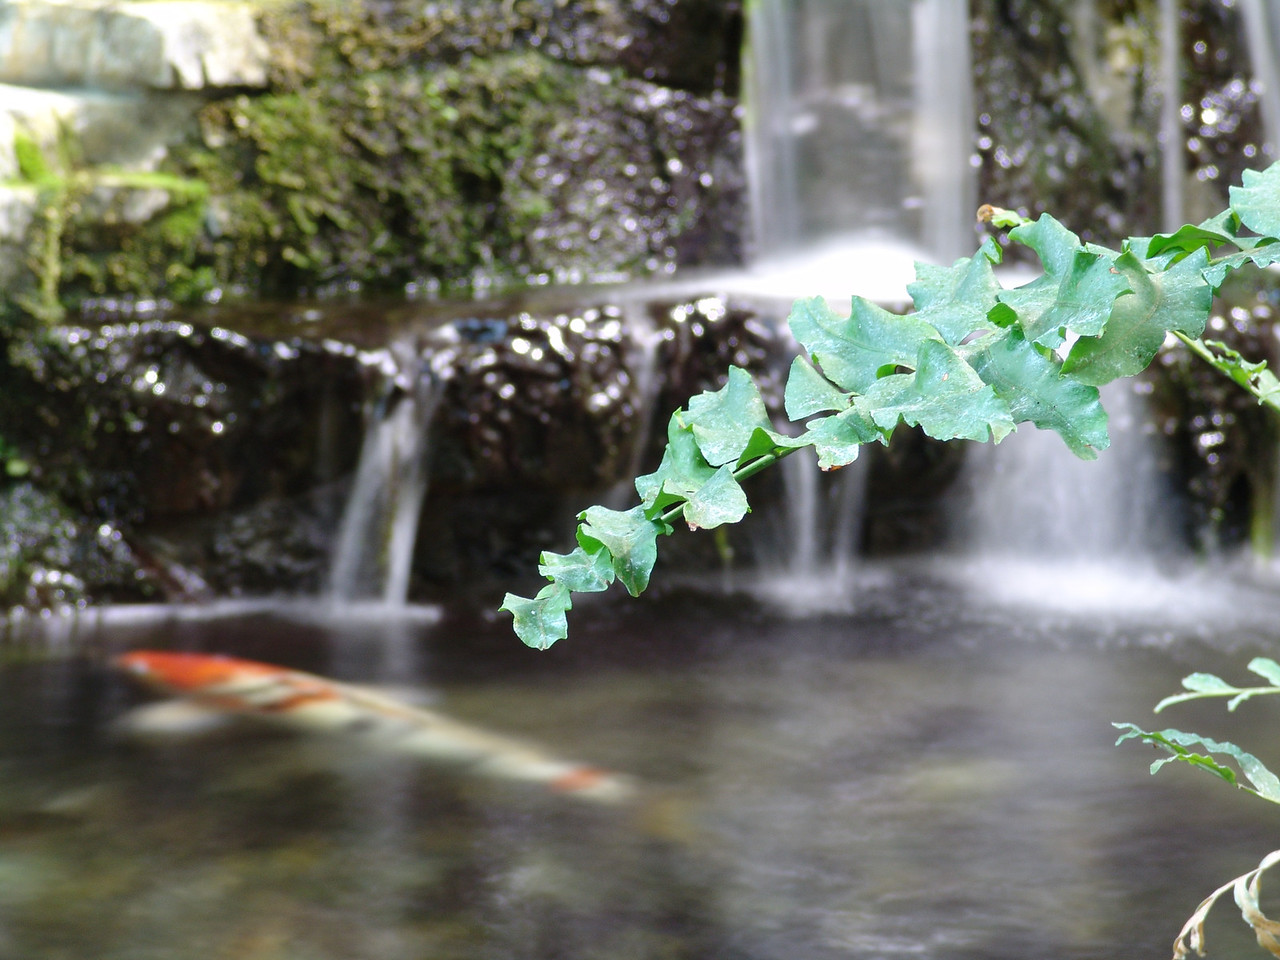 I was experimenting with a long exposure (1 second) and playing with the composition of the shot. Here, the auto focus picked the stray branch over the water. By happy coincidence the fish came into the picture. The picture seems to have a lagoon feeling.